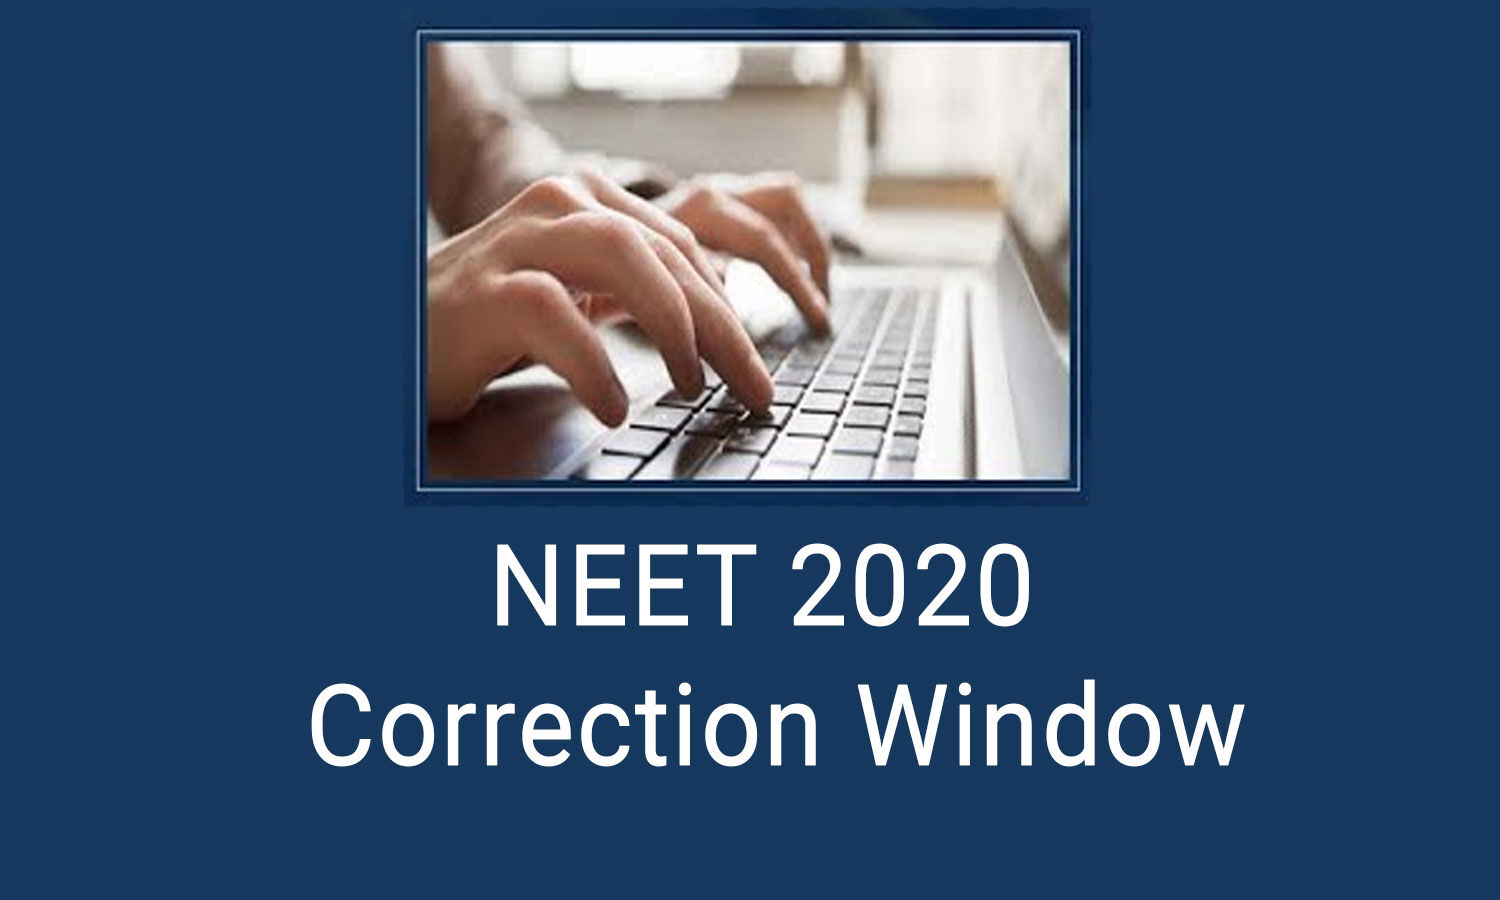 Coronavirus: NTA reopens Correction Facility for NEET 2020 online application forms